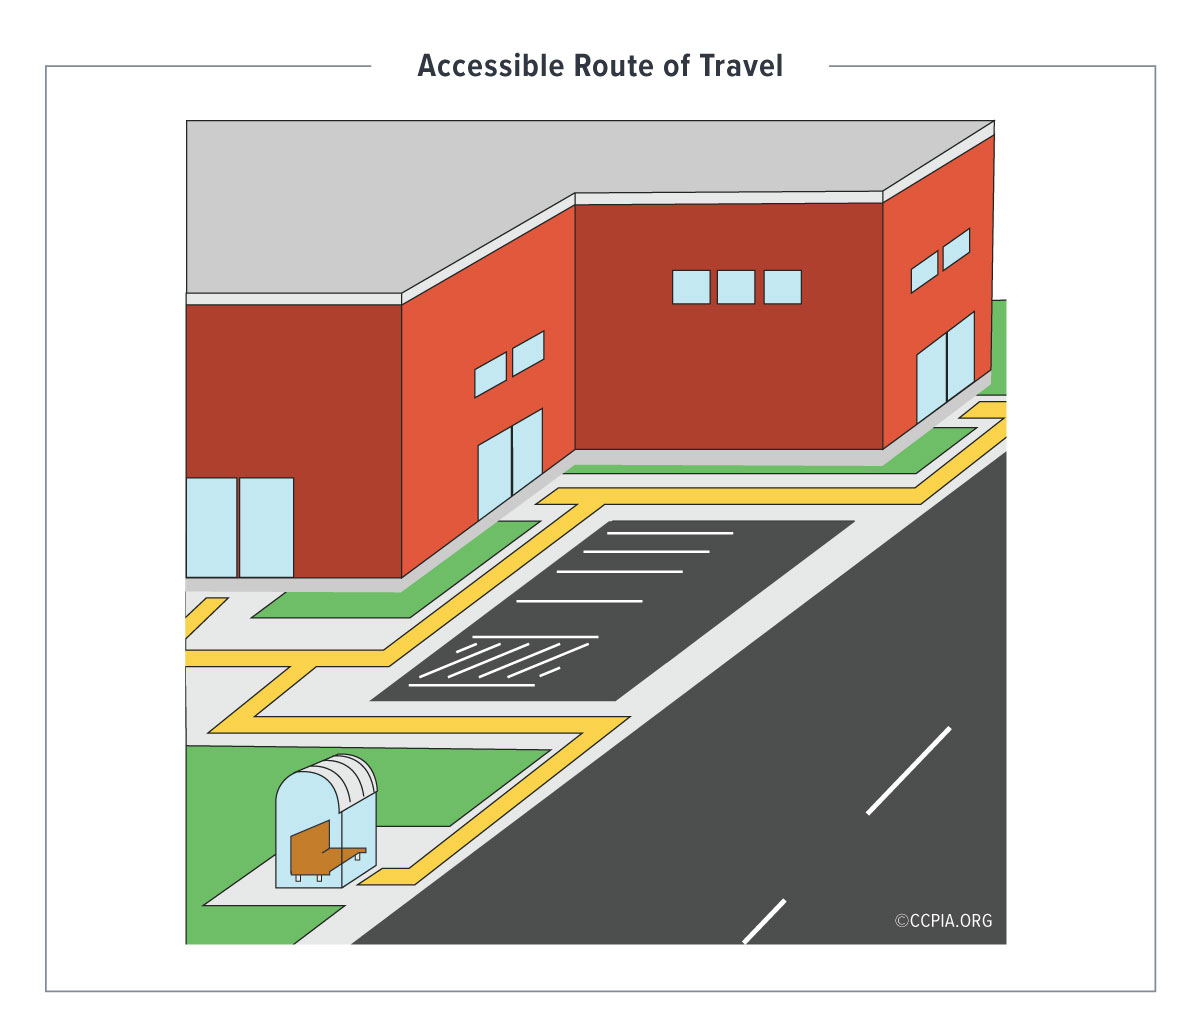 An accessible route of travel at a commercial building.